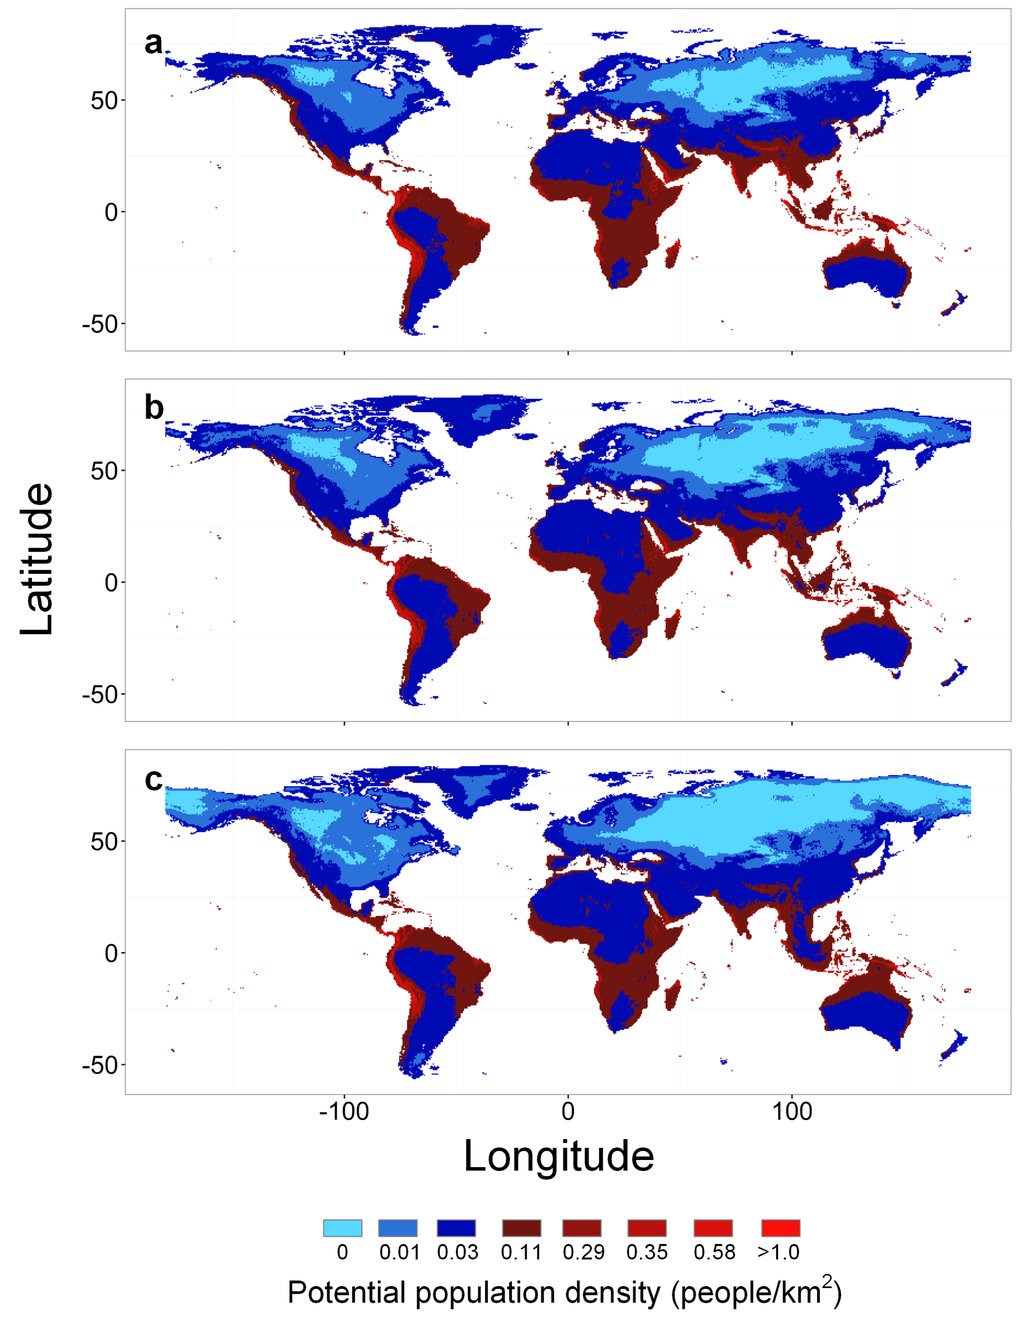 Predictions of potential population density for foragers at (a) 4,000 YBP, (b) 10,000 YBP, and (c) 21,000 YBP. Blue hues depict potential population densities below the median population density of observed foraging societies and red hues depict potential population densities above the median.